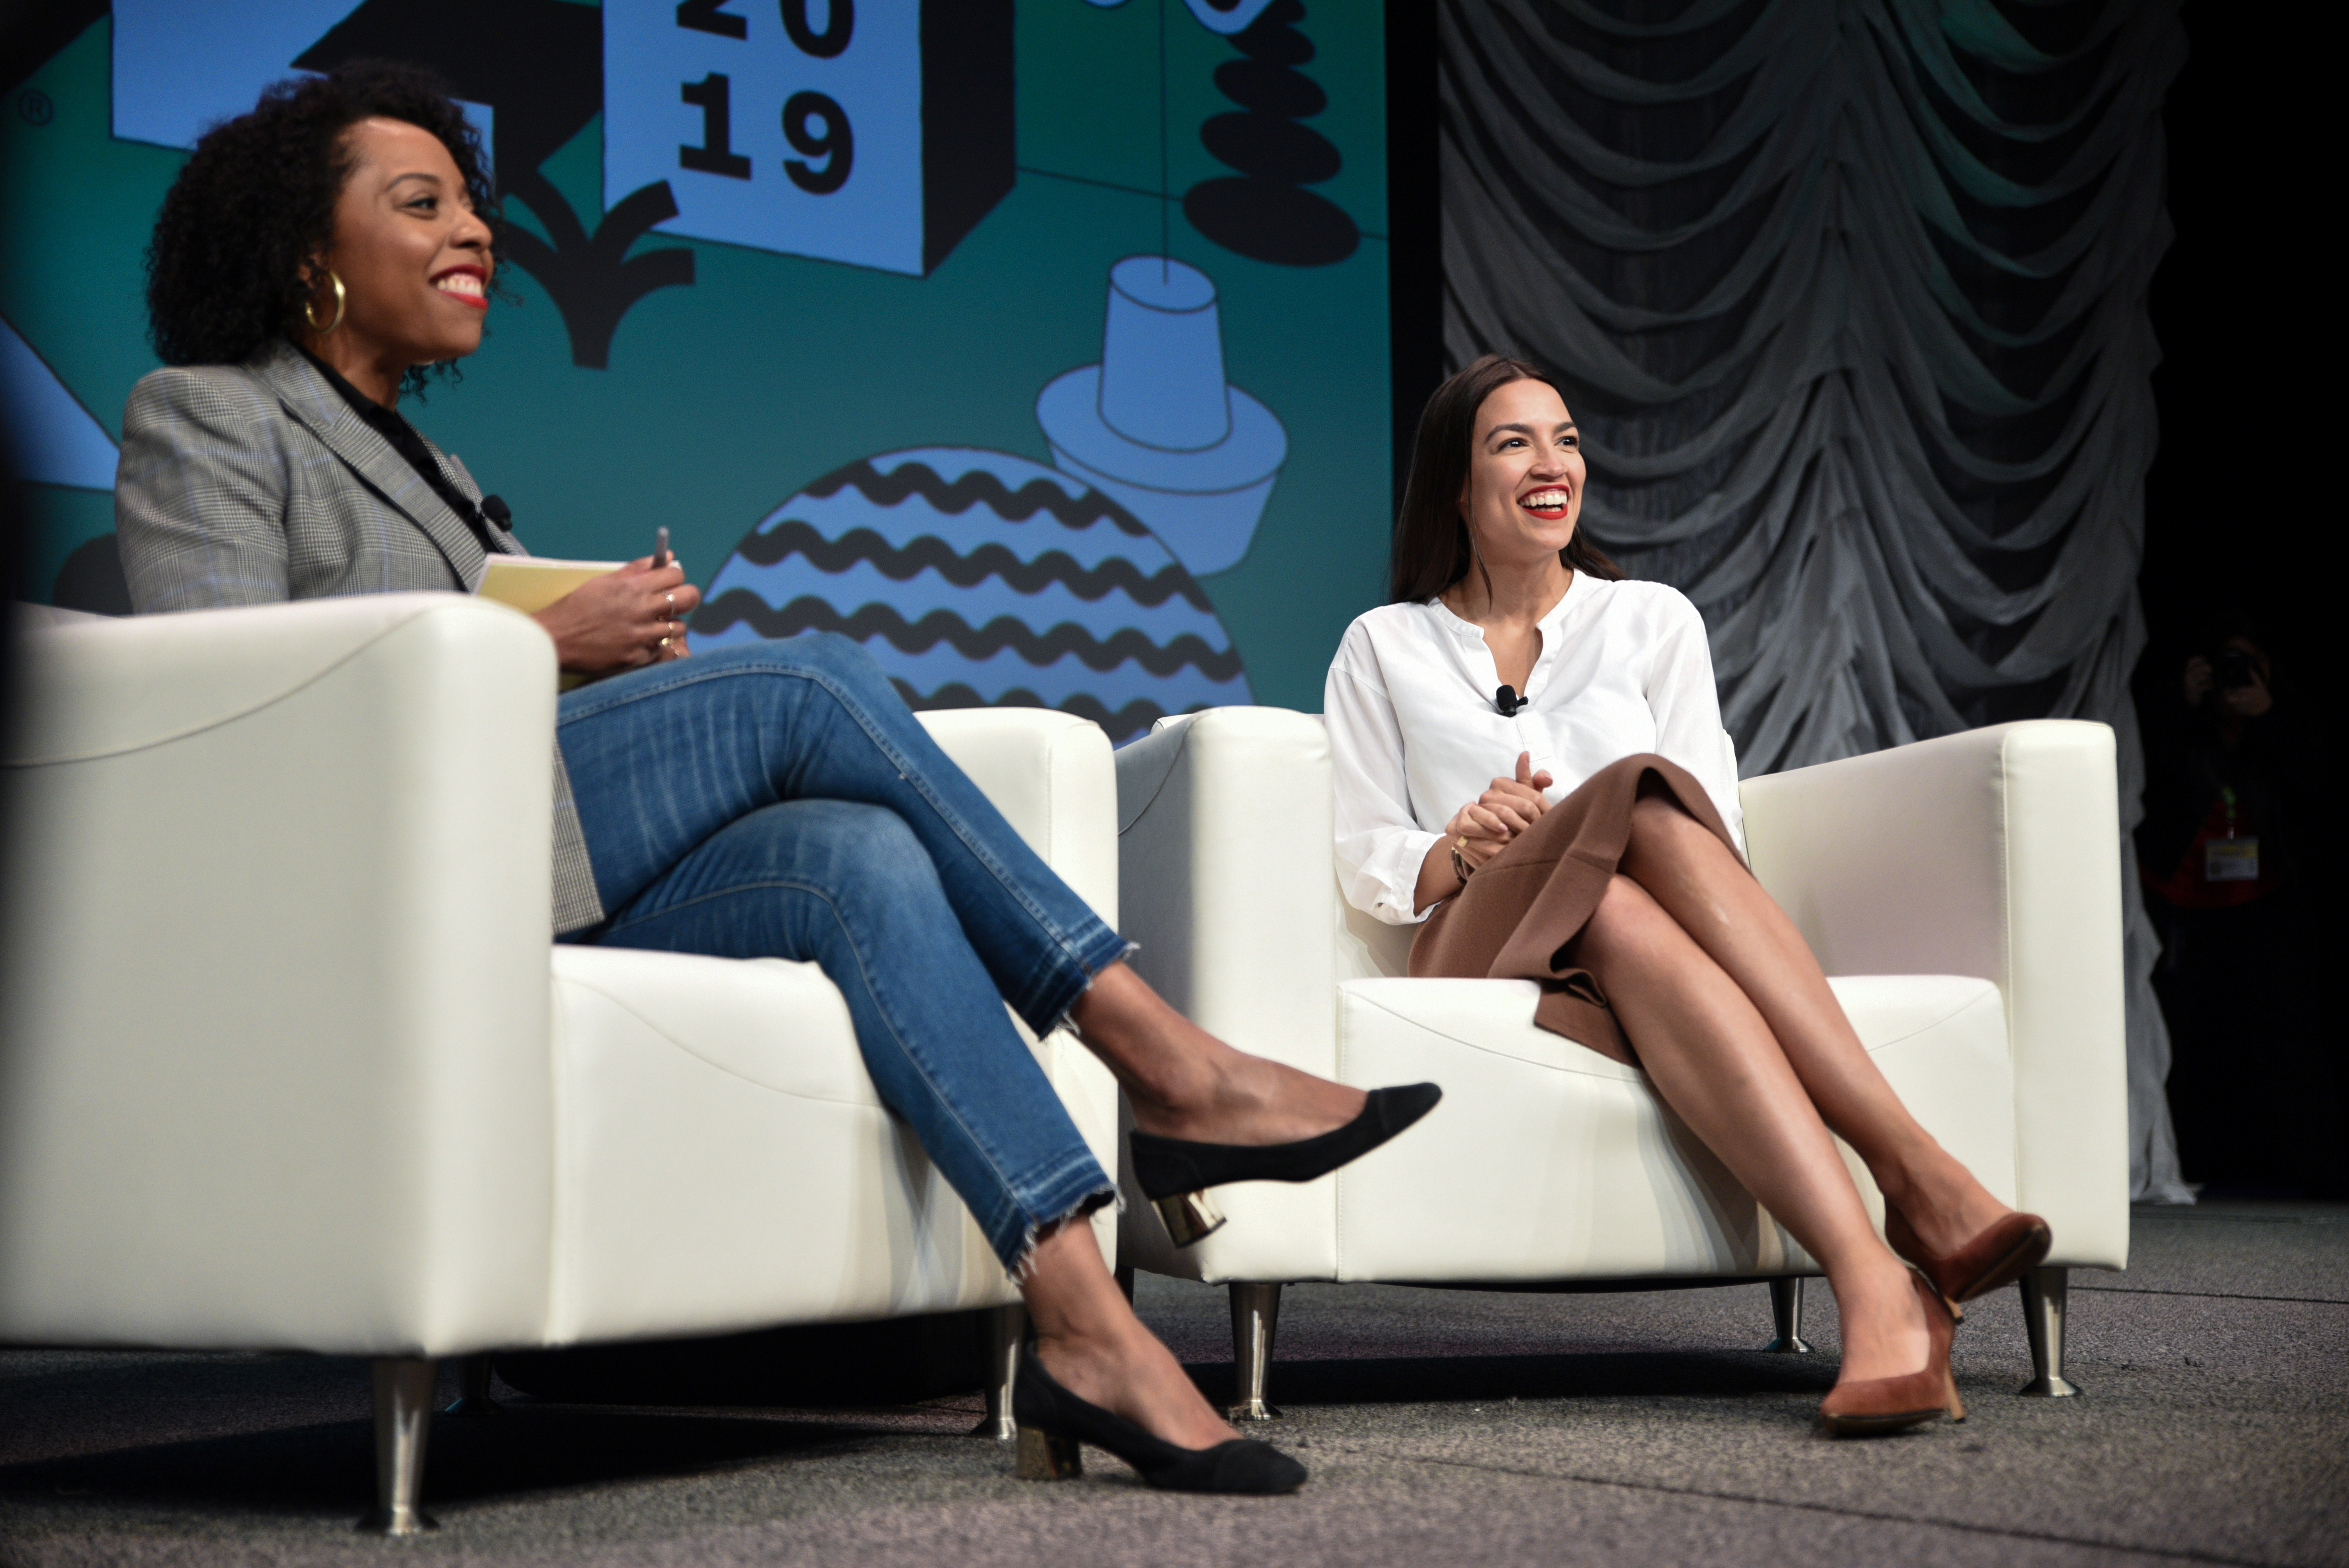 Democratic Rep. Alexandria Ocasio-Cortez speaks about the first few months of her tenure in congress with Briahna Gray at the South by Southwest conference and festivals in Austin, Texas, March 9, 2019. REUTERS/Sergio Flores